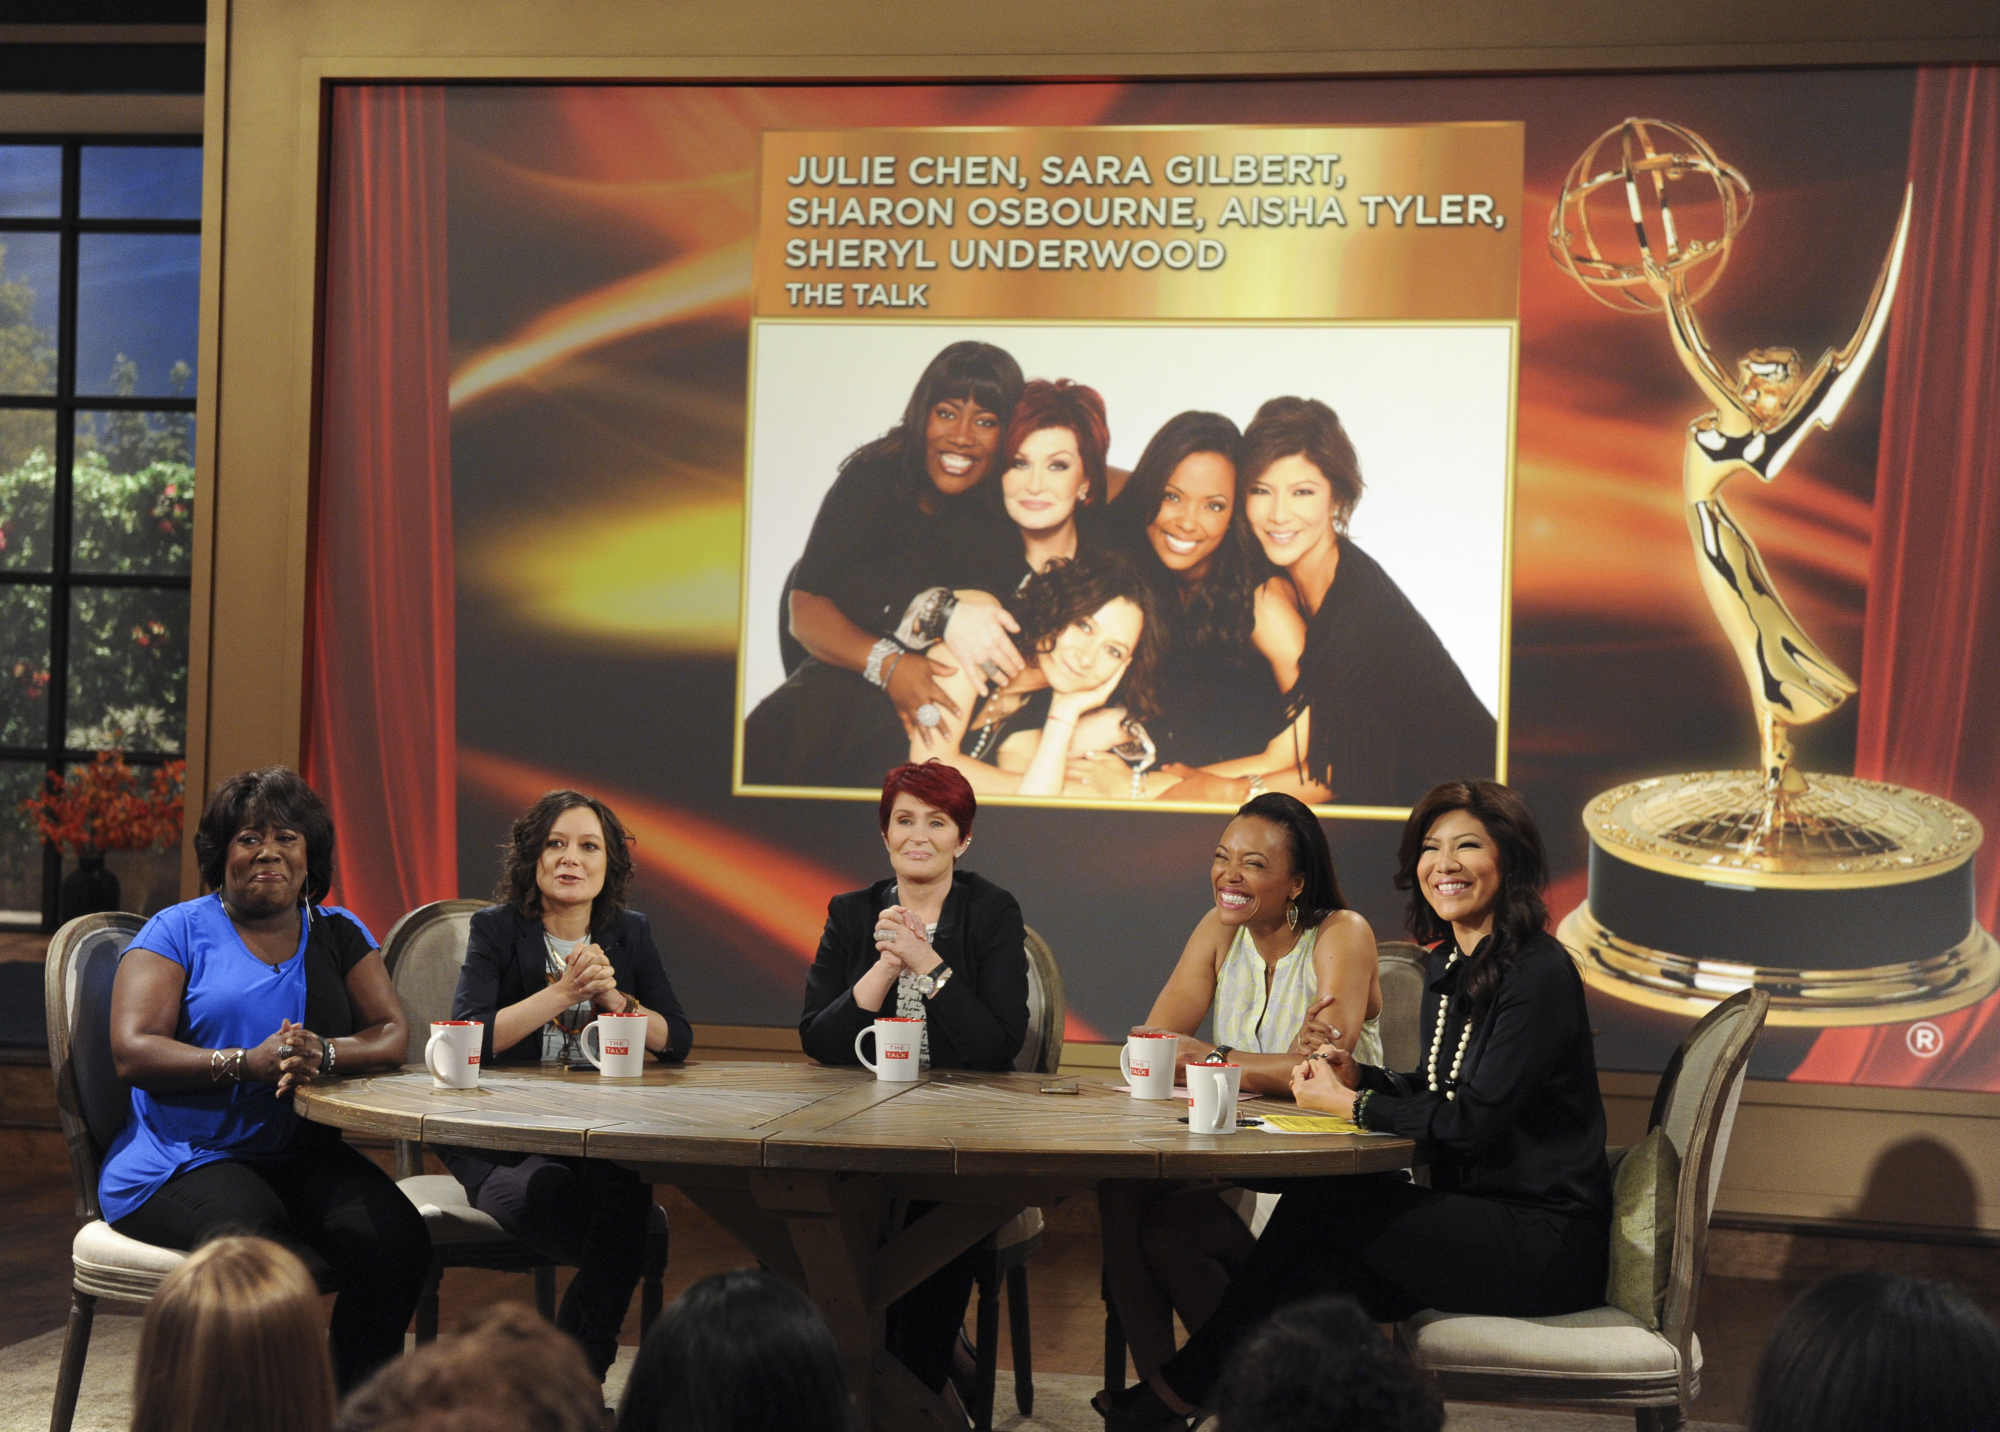 3. Nominations For The Daytime EMMYs Were Announced Live.